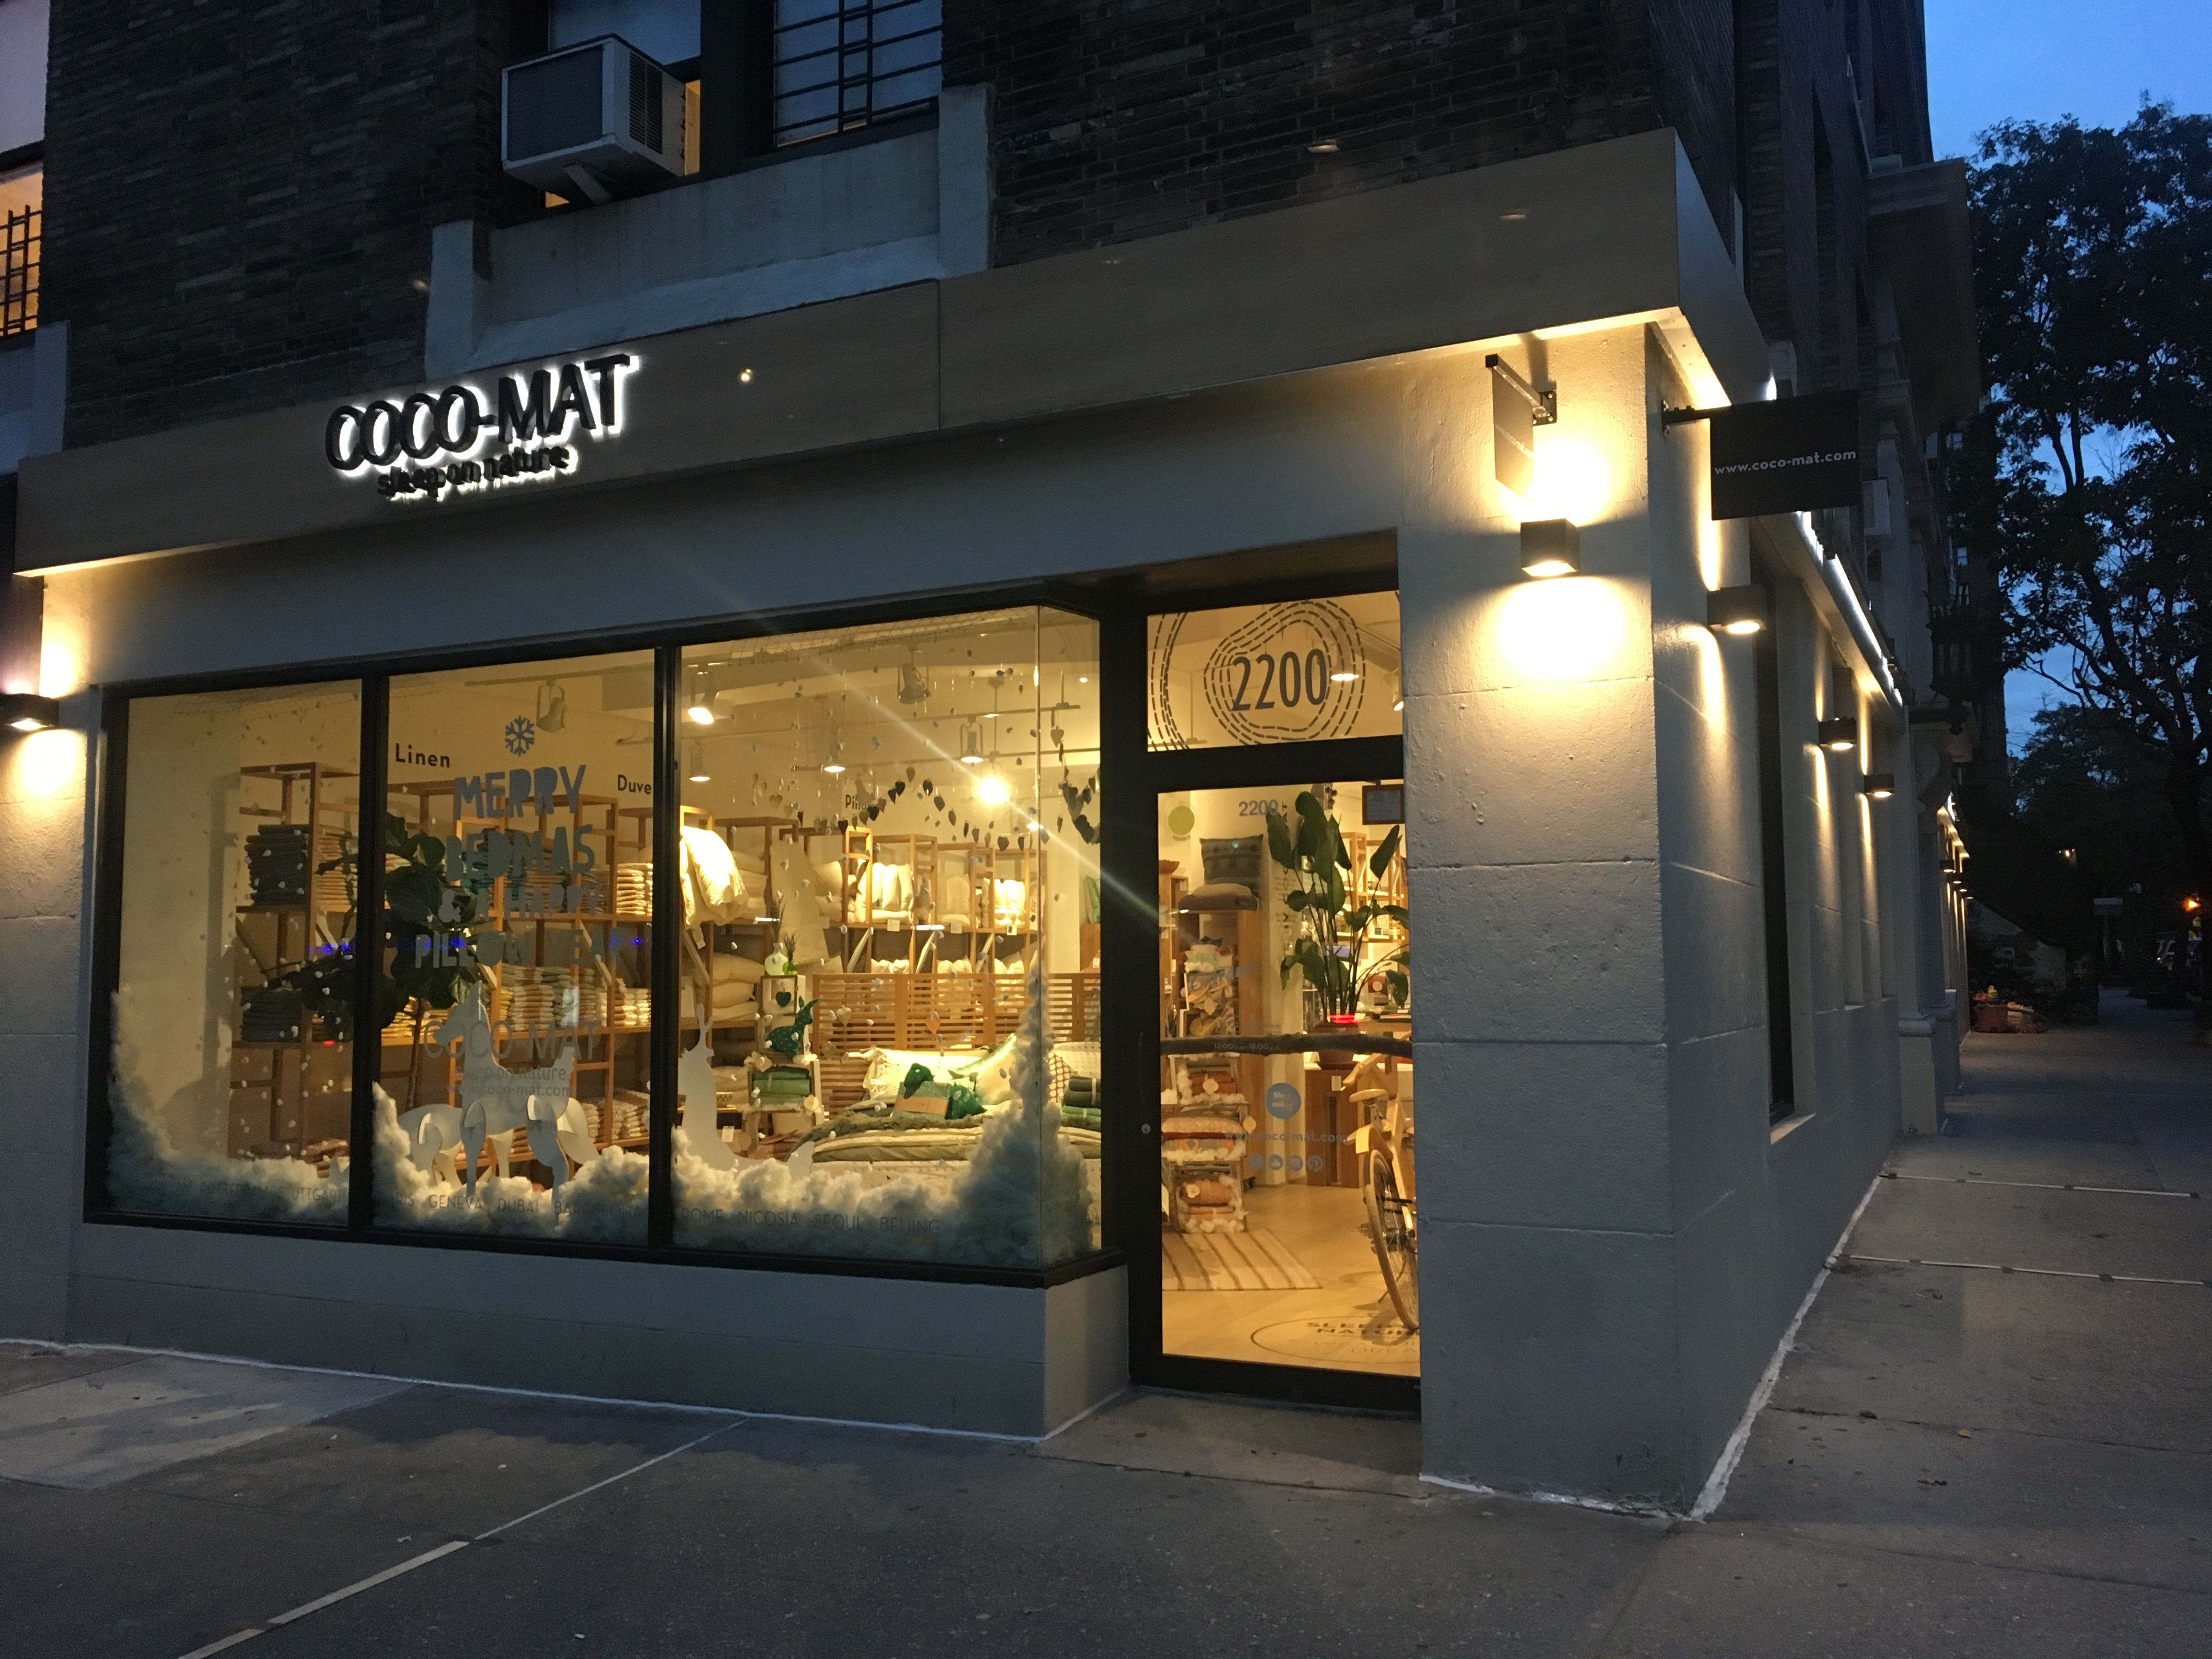 Coco Mat At 2200 Broadway New York Ny On Fave